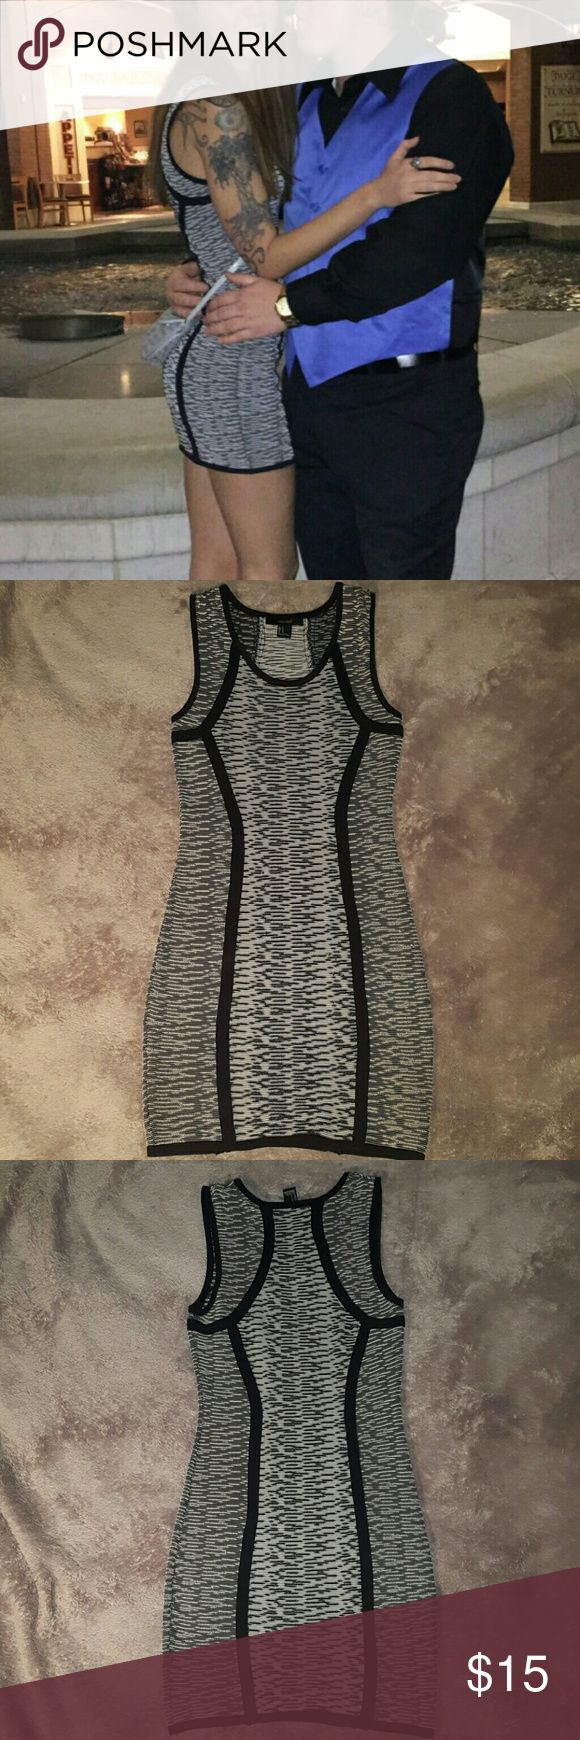 Forever 21 black and white bodycon dress Mini. Really flatters your curves. Great condition, only worn once to an event. Black and white. Looks grey from far away. Forever 21 Dresses Mini